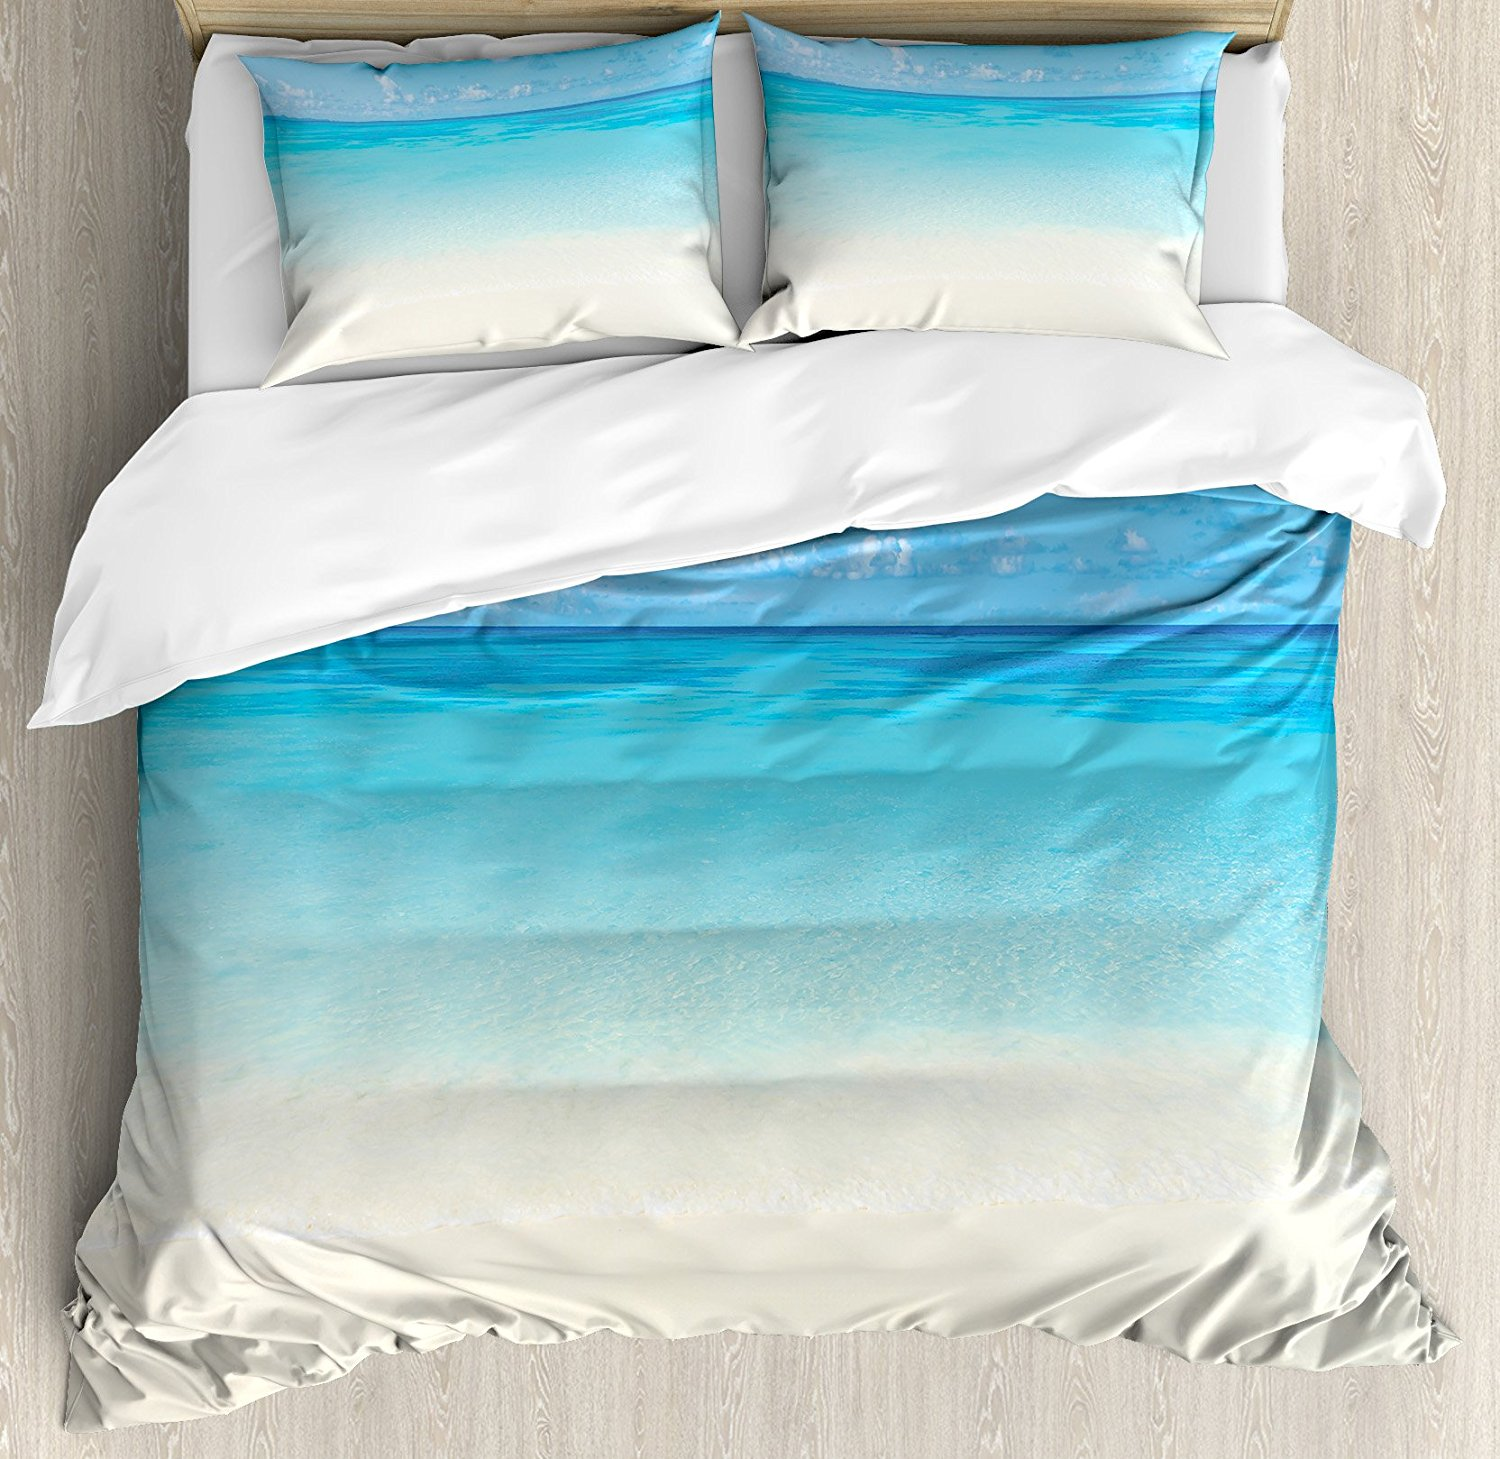 Ocean Duvet Cover Set Paradise Beach in Tropical Caribbean Sea with Fantastic Sky View Calm Beach House Theme Bedding Set Navy image